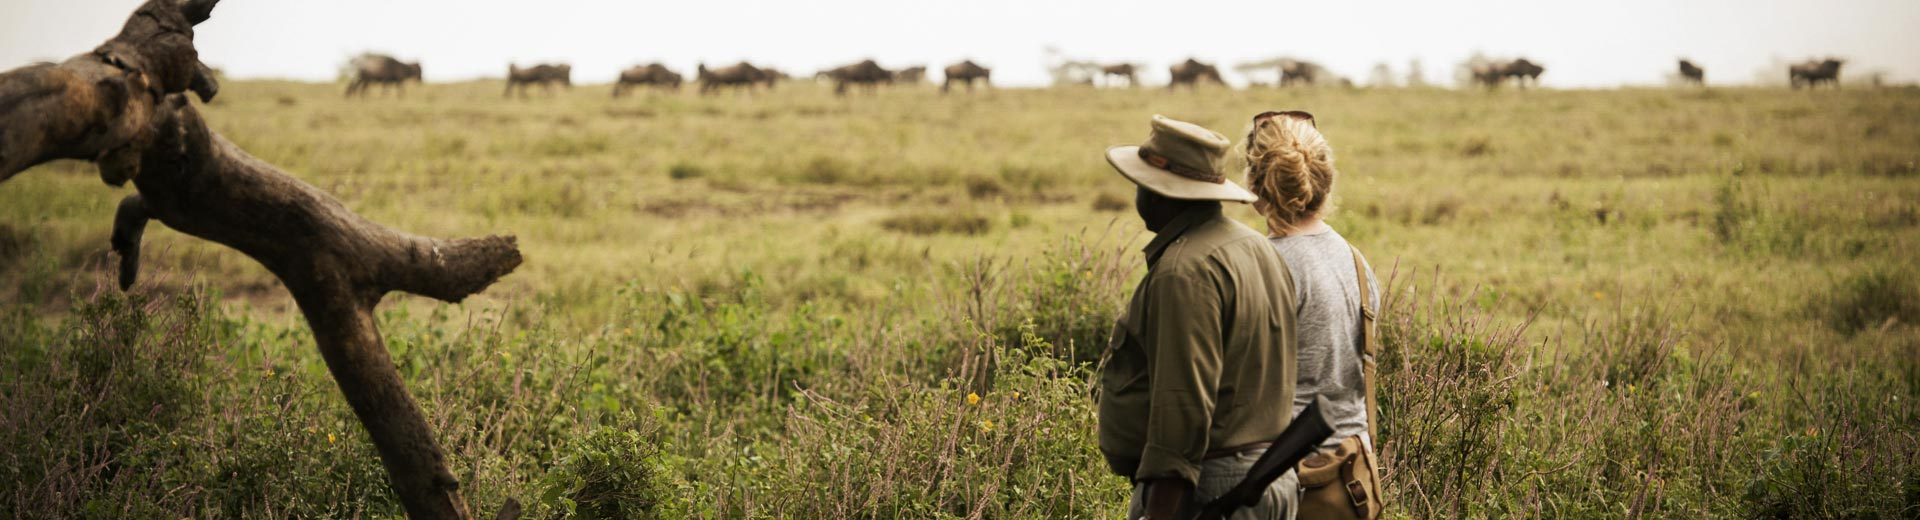 Tanzania Walking Safari